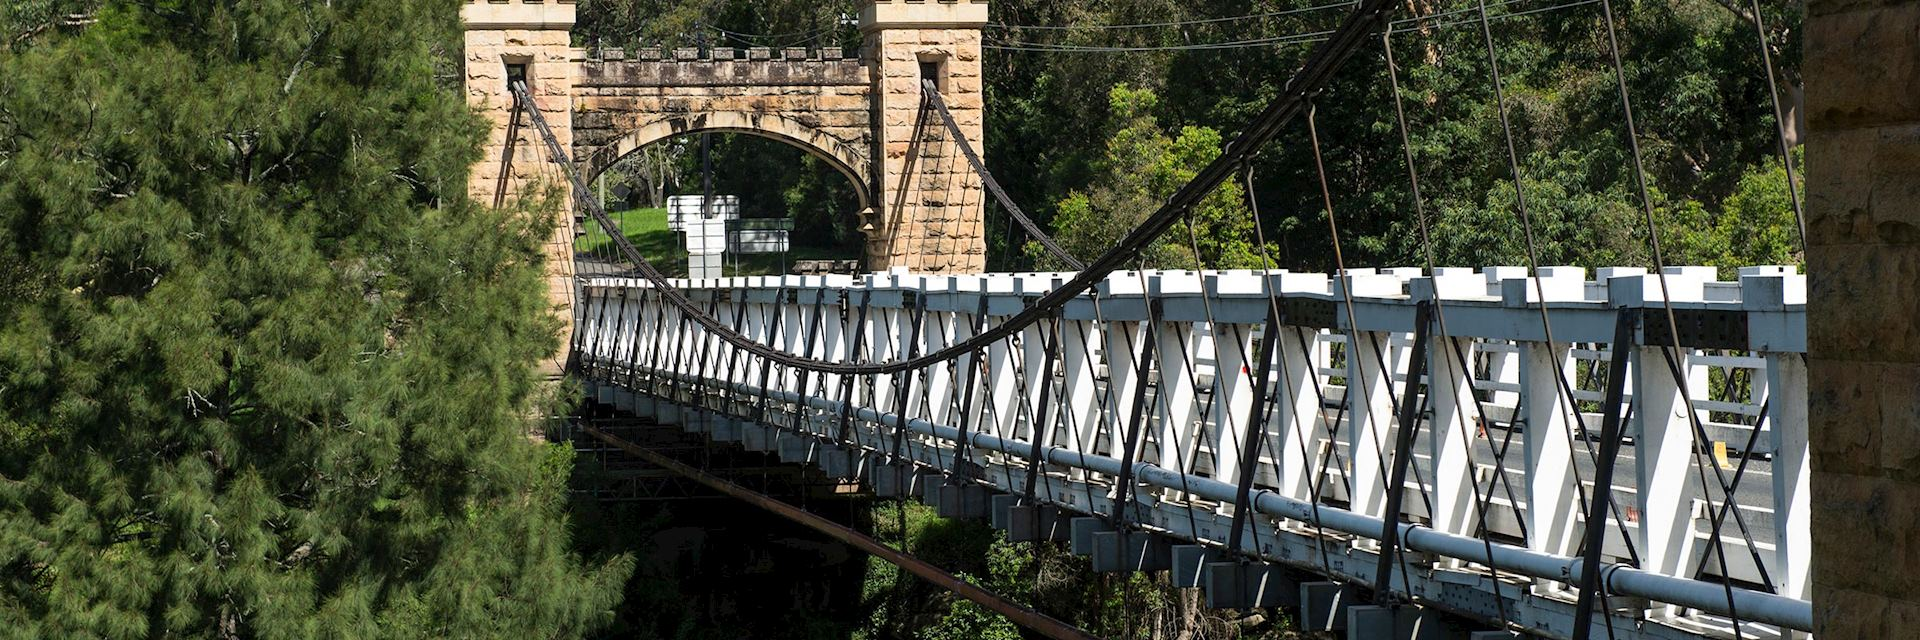 Hampden Bridge, Kangaroo Valley